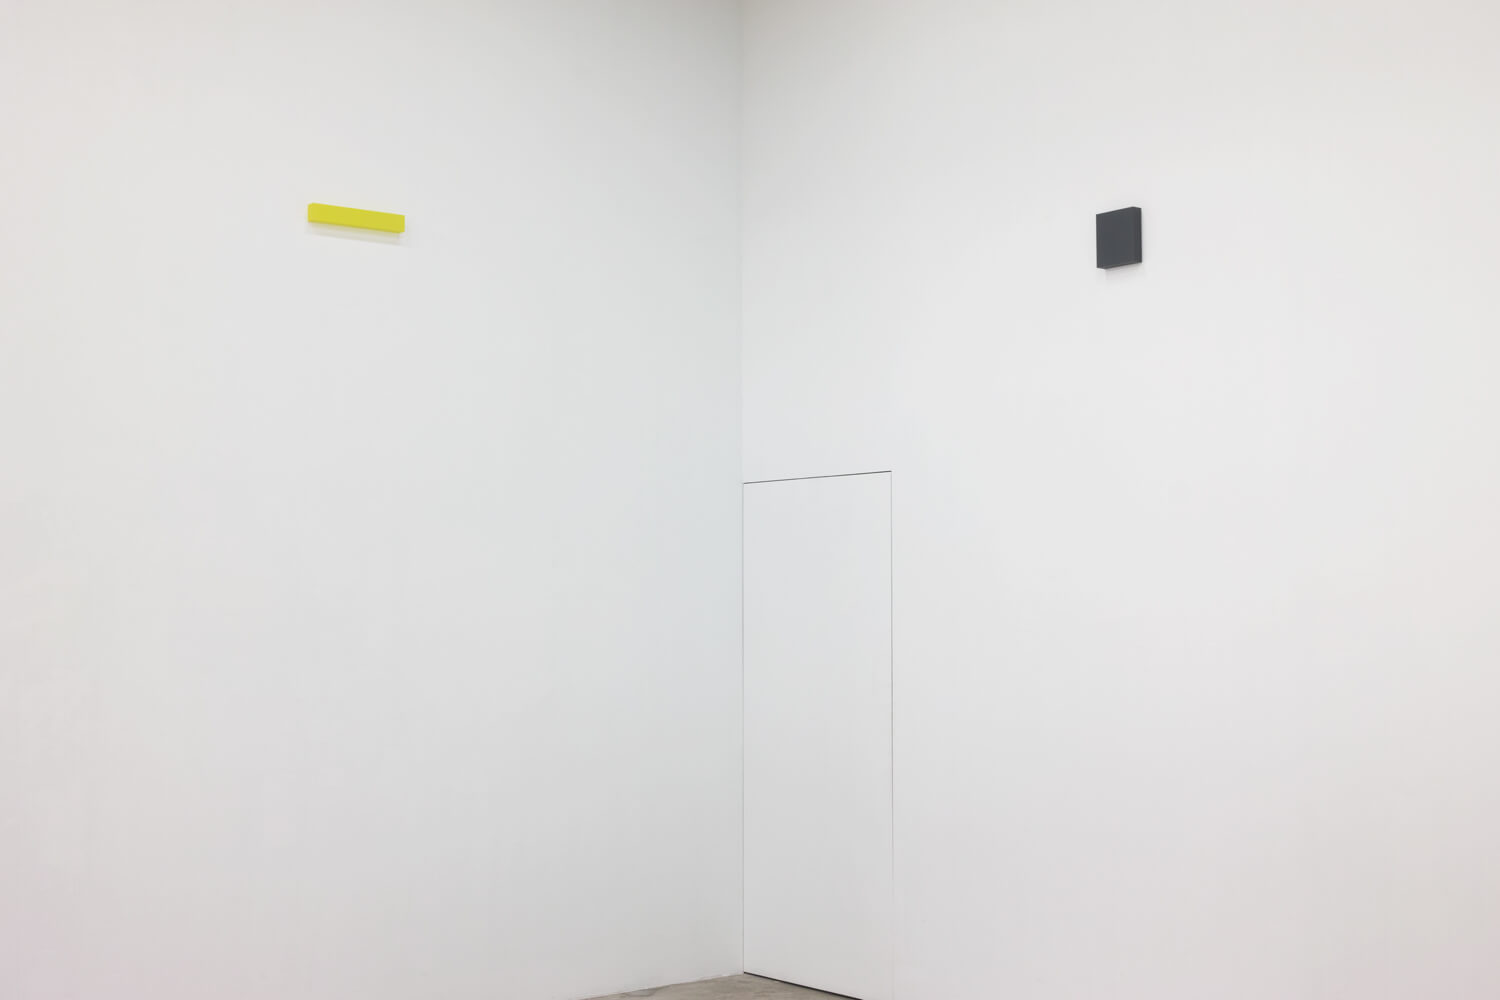 half note_lemon, silkscreen on perspex, 6 x 36 x 4 cm, 2018 (left)<br>half note_gray, silkscreen on perspex, 18 x 16 x 4 cm, 2018 (right)